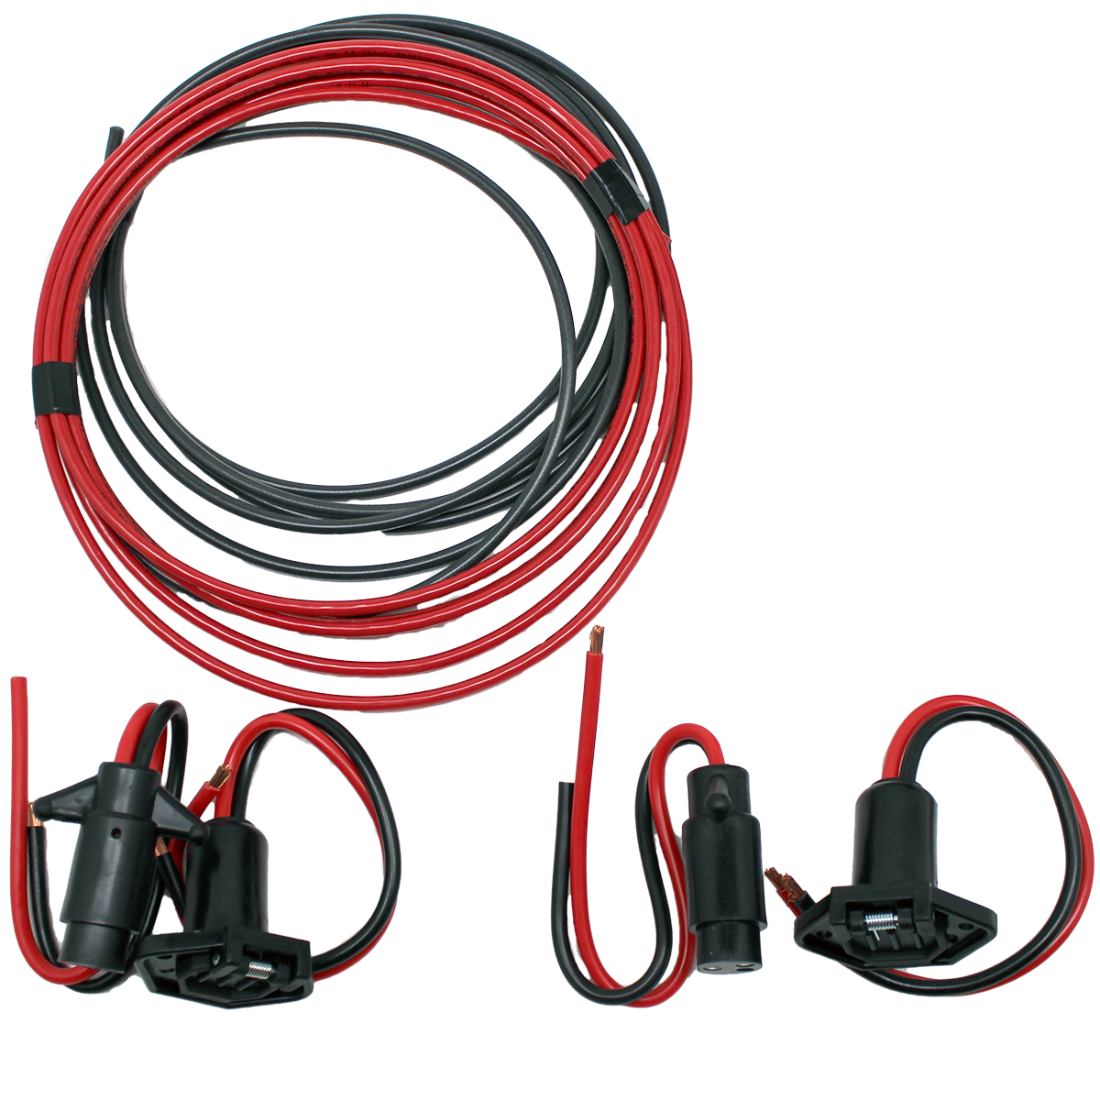 Nucanoe motor wiring kit for Electric trolling motor accessories